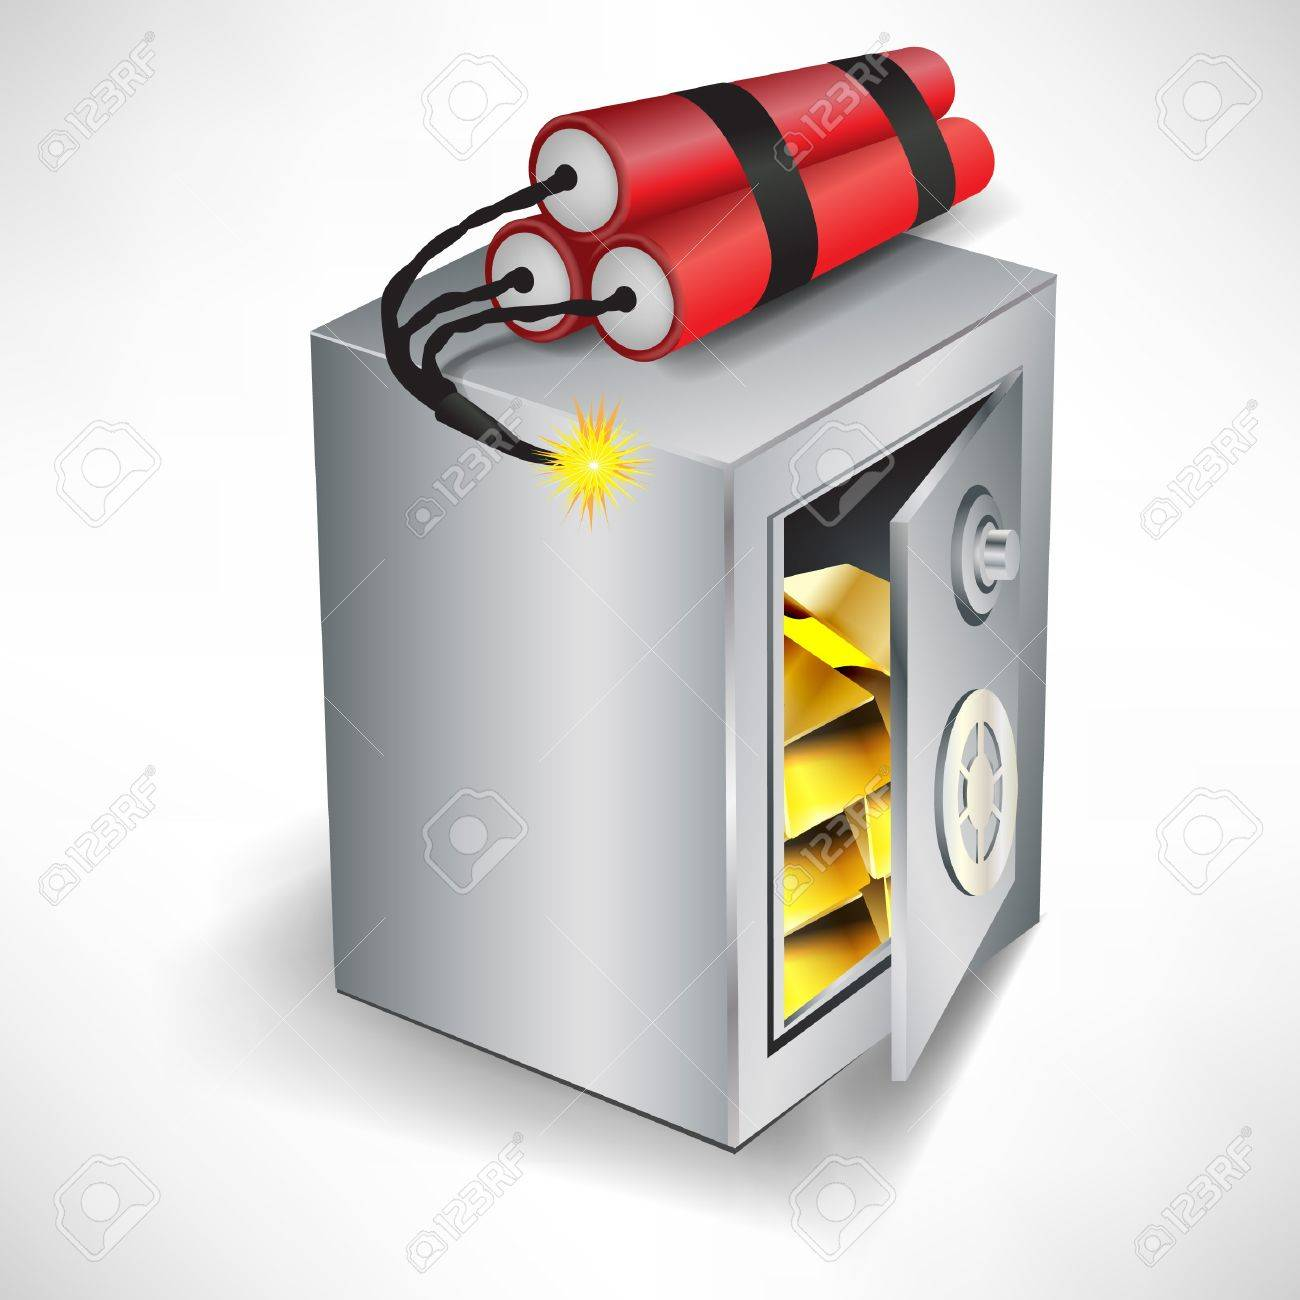 safe with dynamite robbery concept isolated on white Stock Vector - 10888354